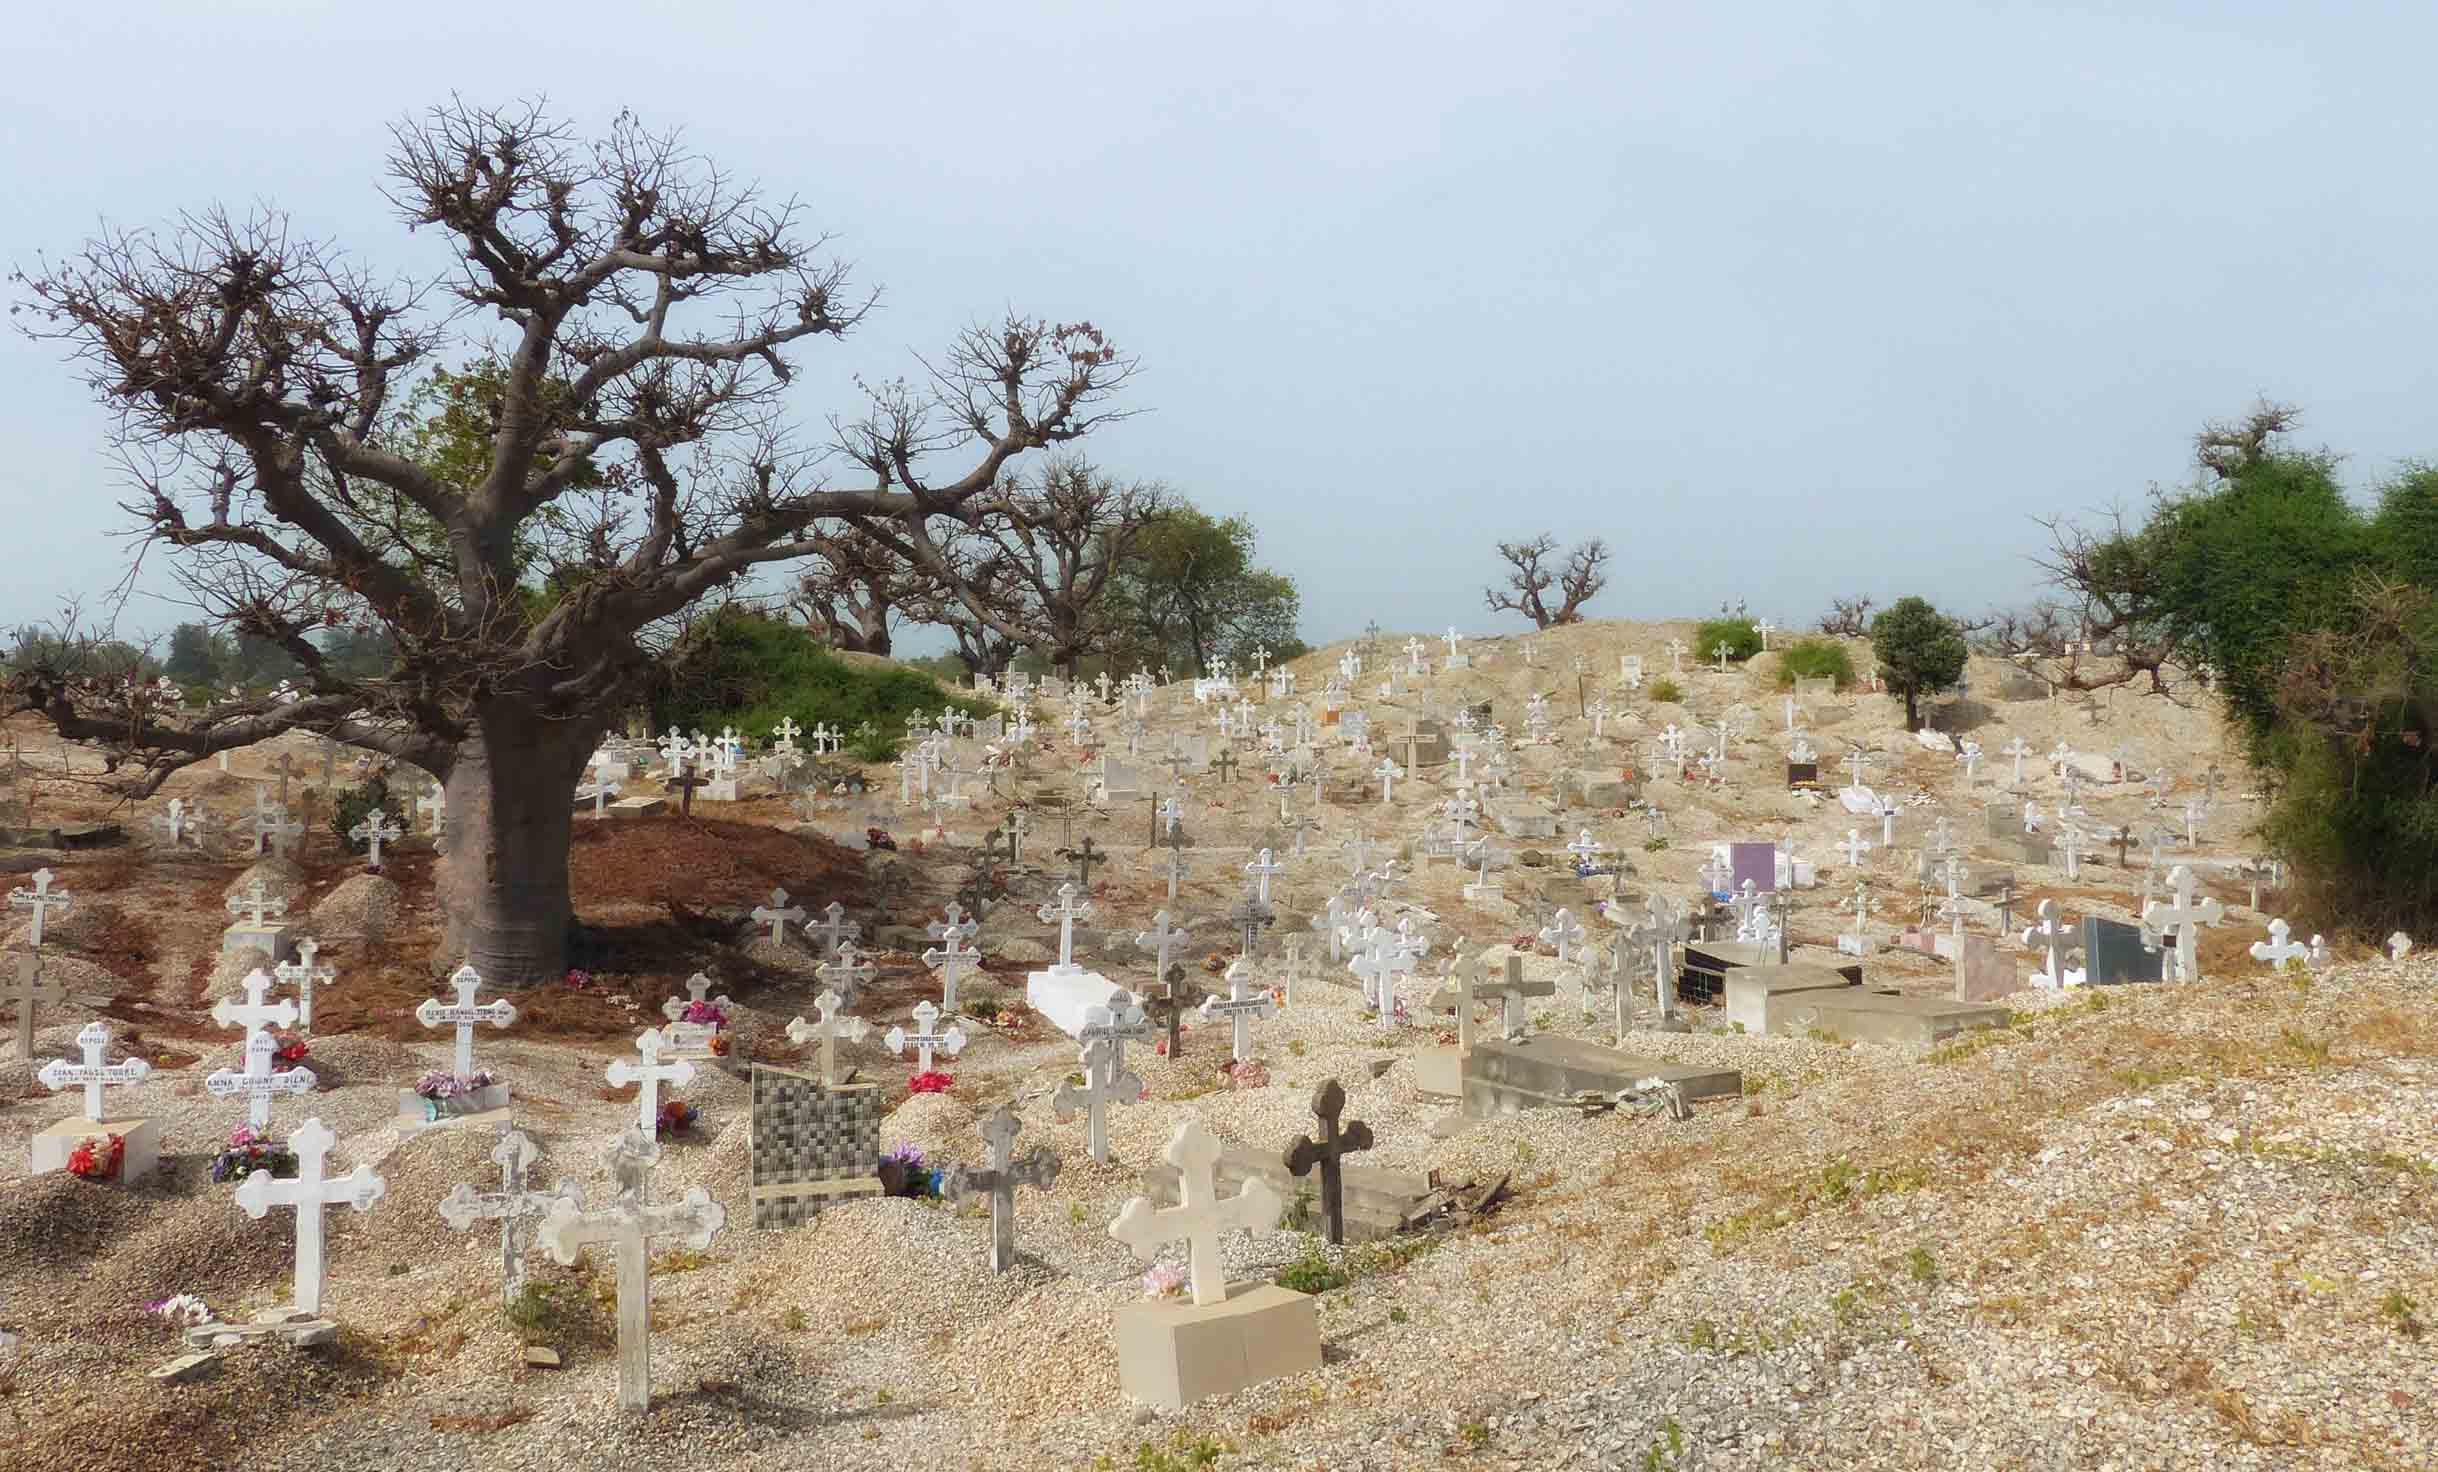 Cemetery with banyan trees